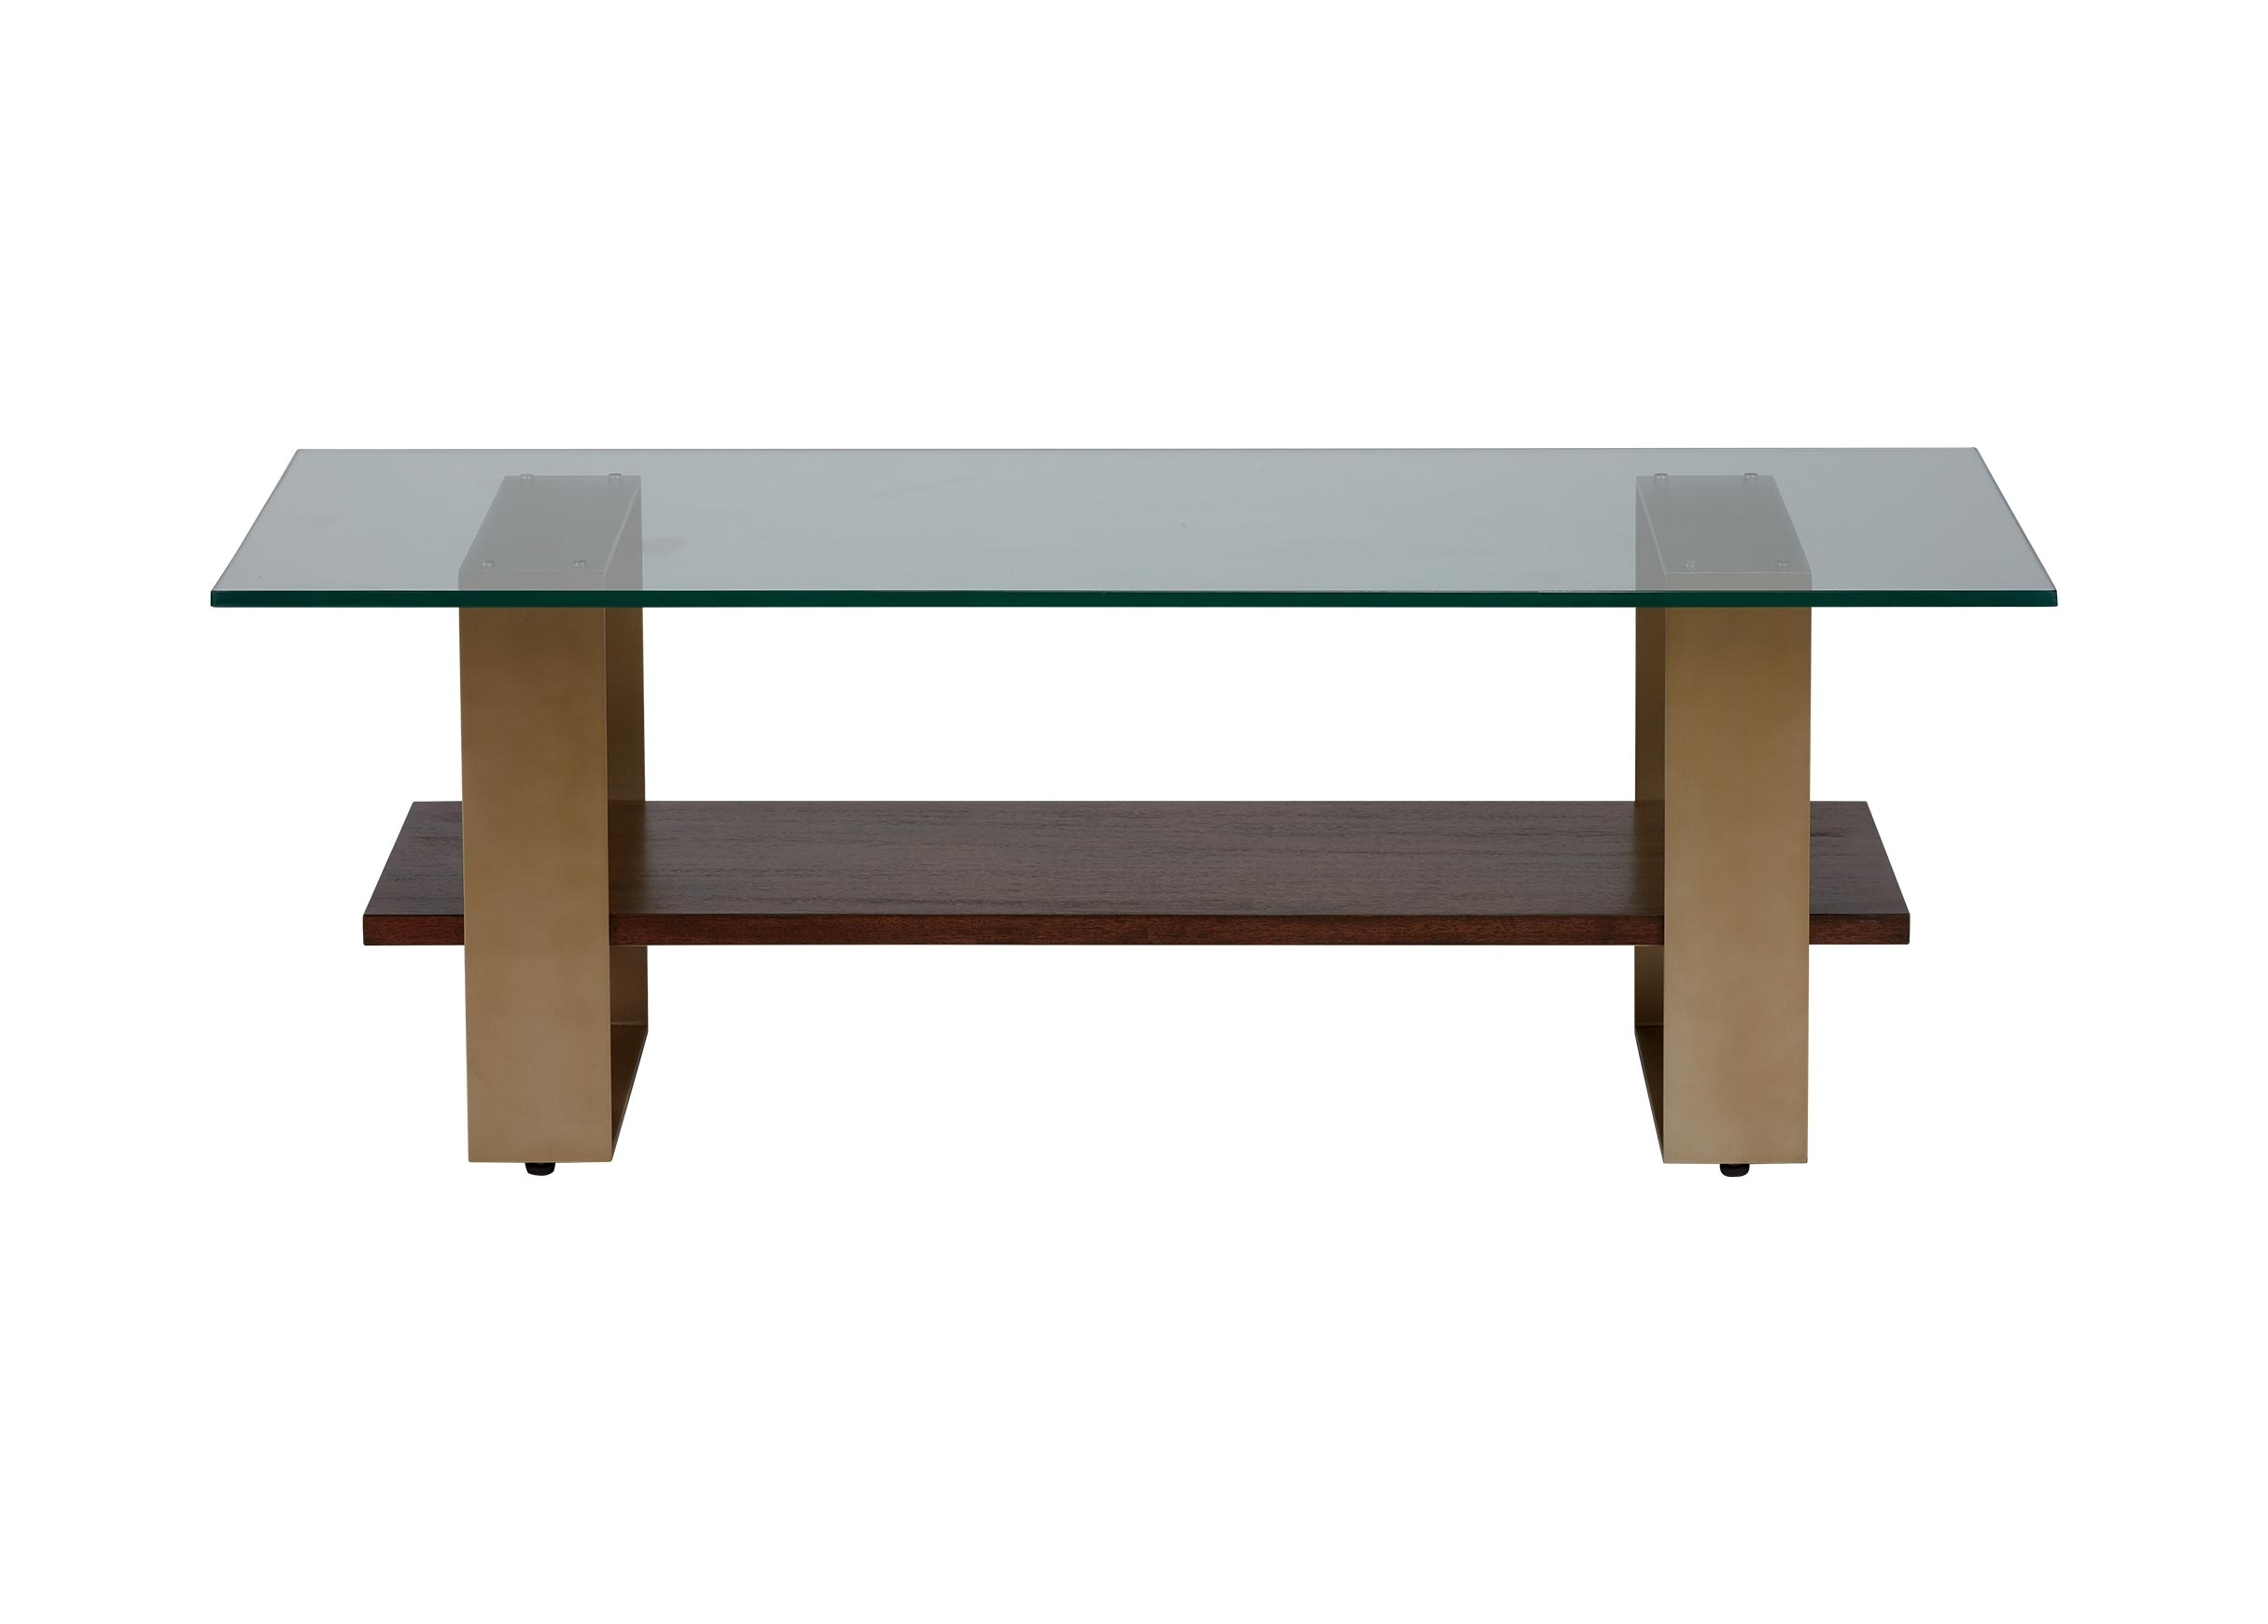 Rosemoor Glass-Top Rectangular Coffee Table | Ethan Allen | Ethan Allen inside Rectangular Brass Finish and Glass Coffee Tables (Image 21 of 30)